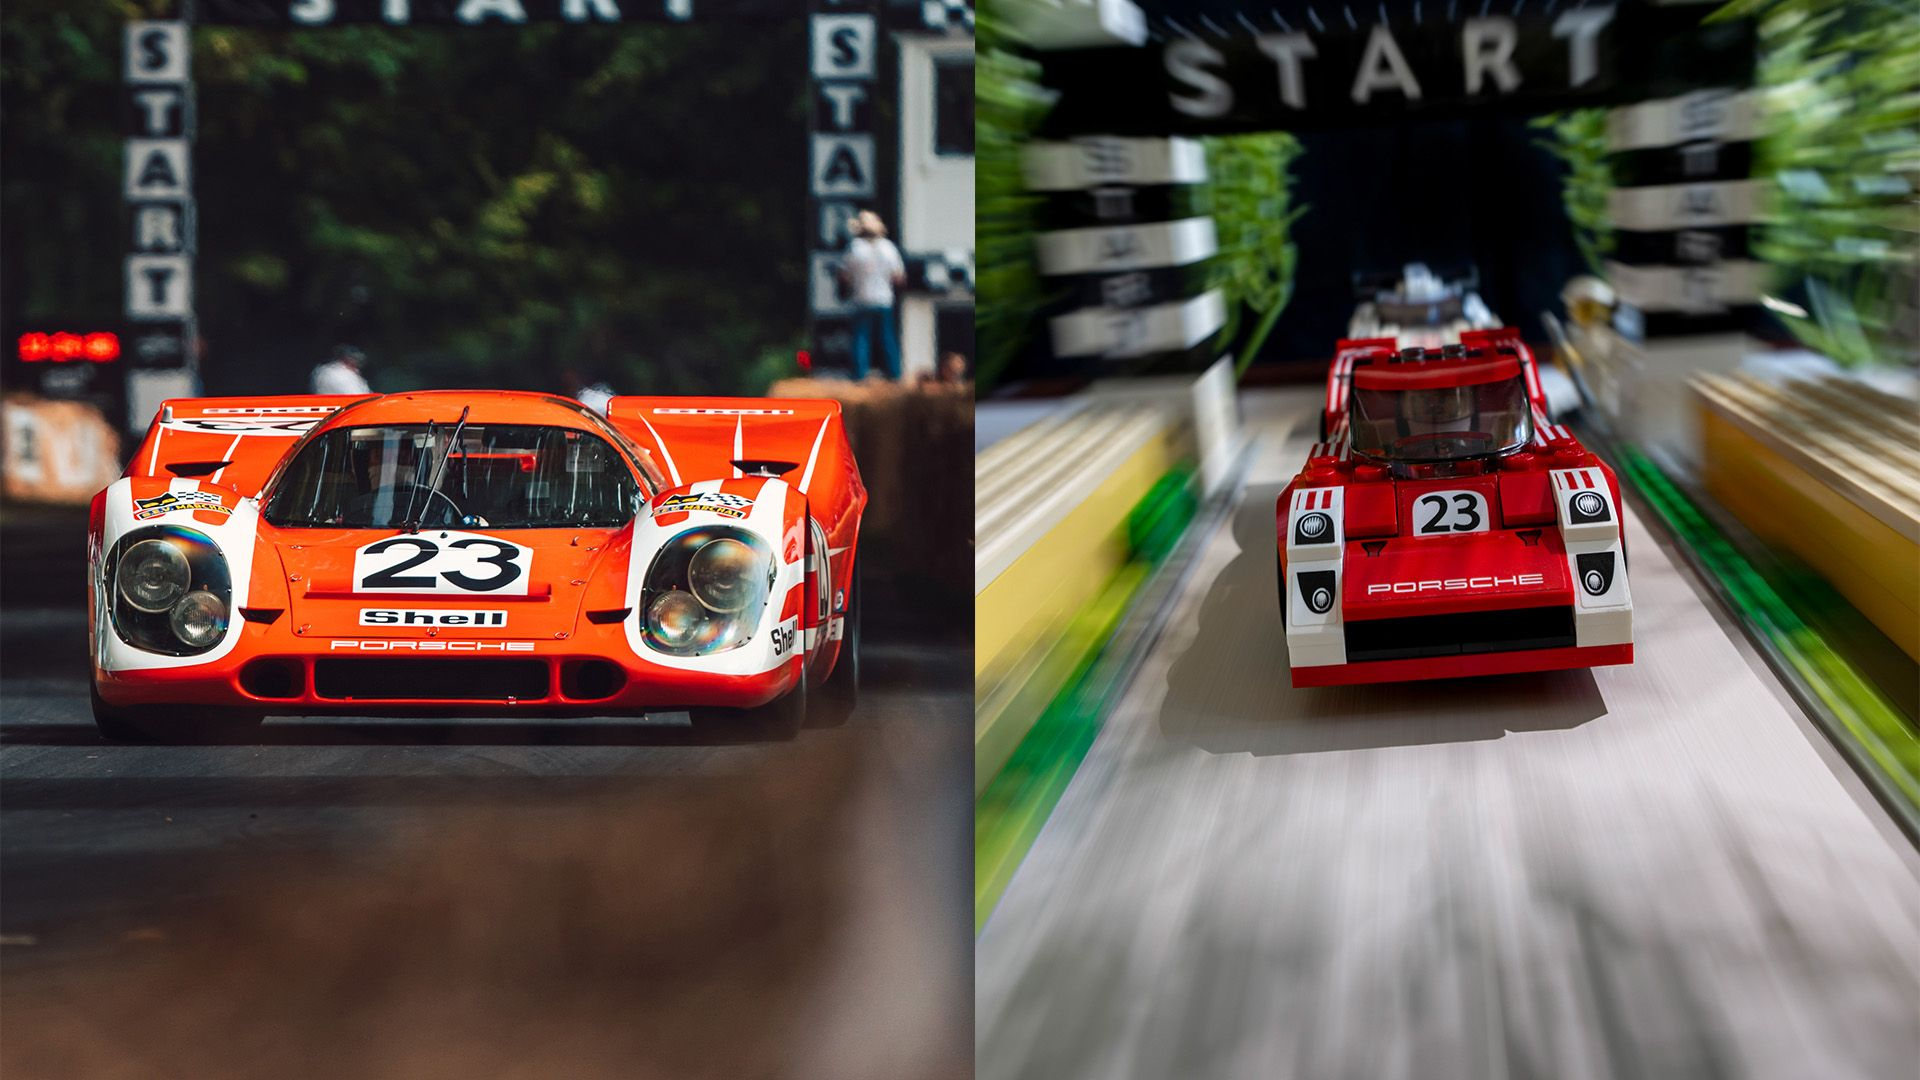 Iconic Porsche road and racing photos recreated with